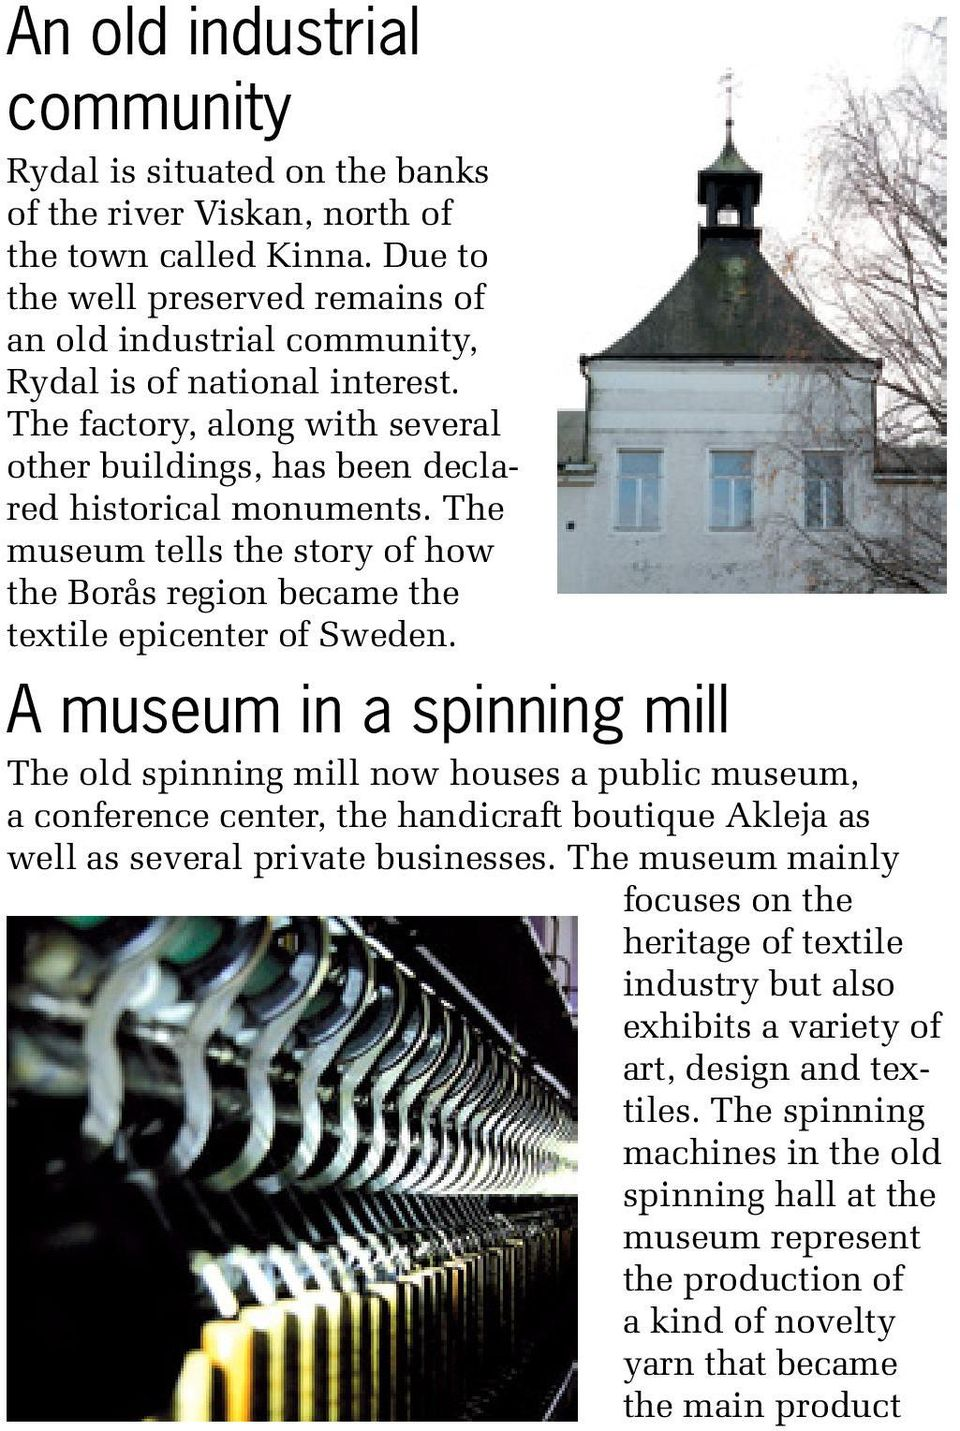 The museum tells the story of how the Borås region became the textile epicenter of Sweden.